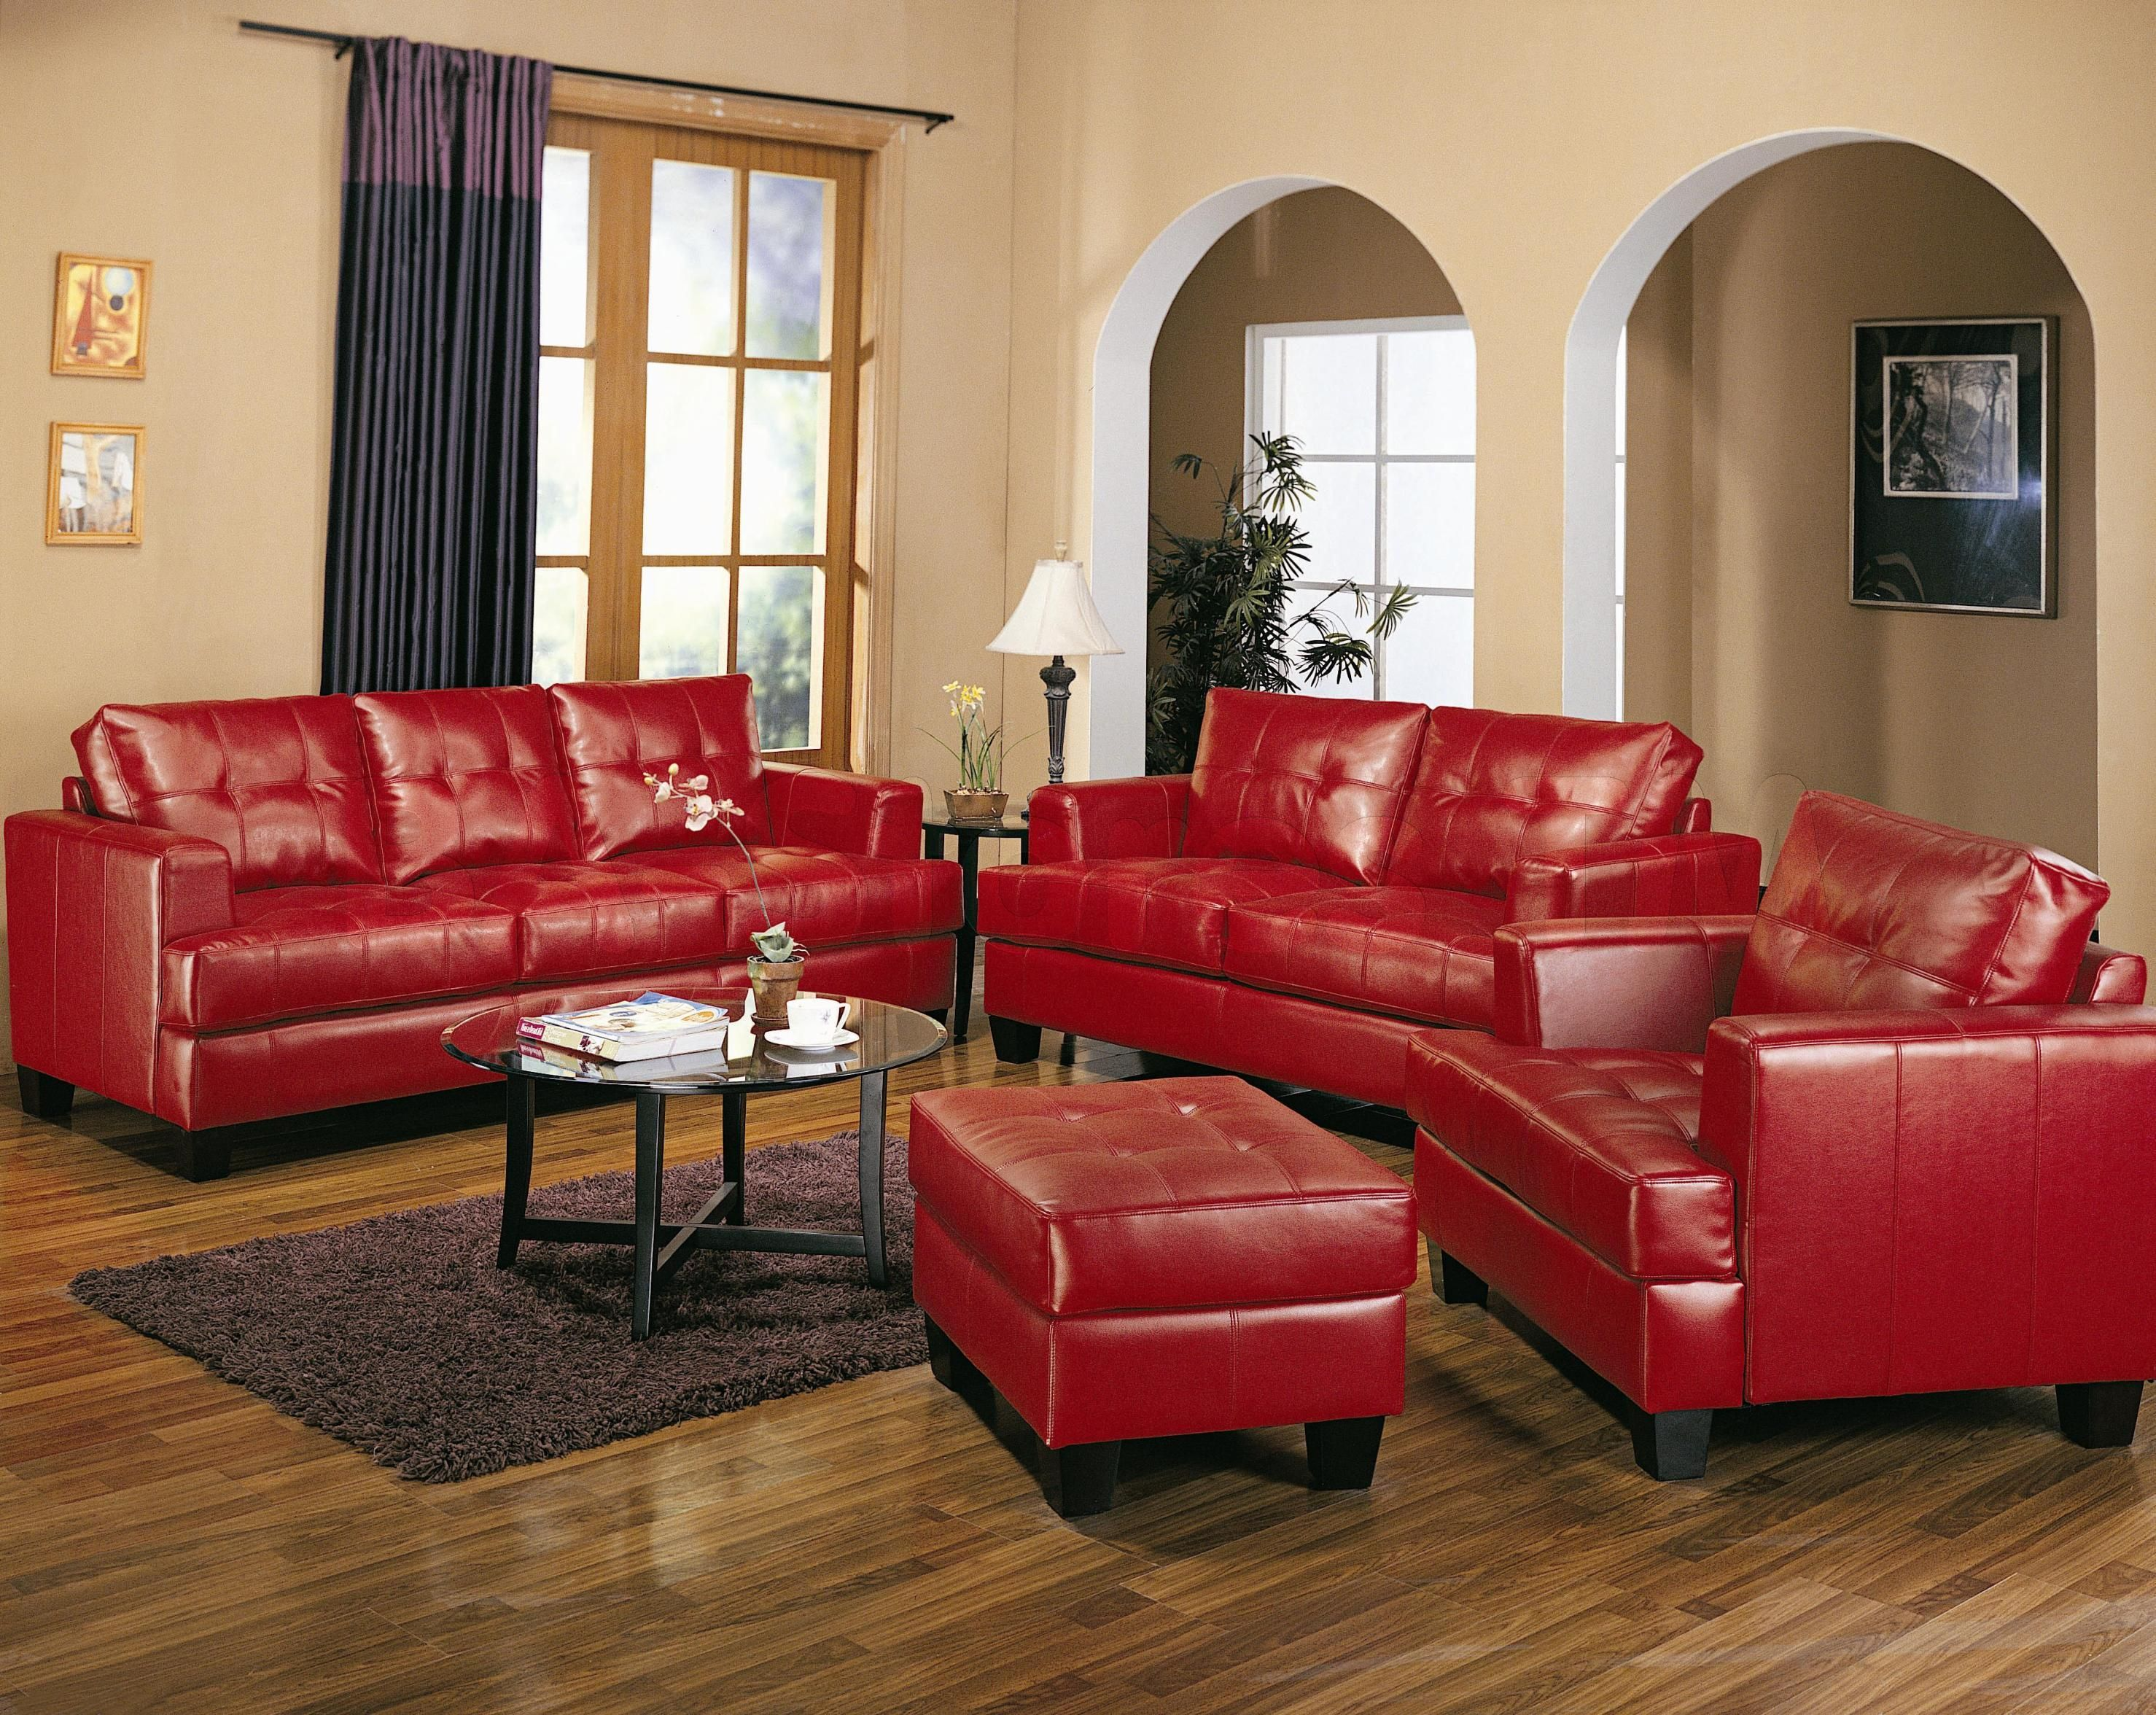 rooms with a red leather couch - Google Search | Leather ...